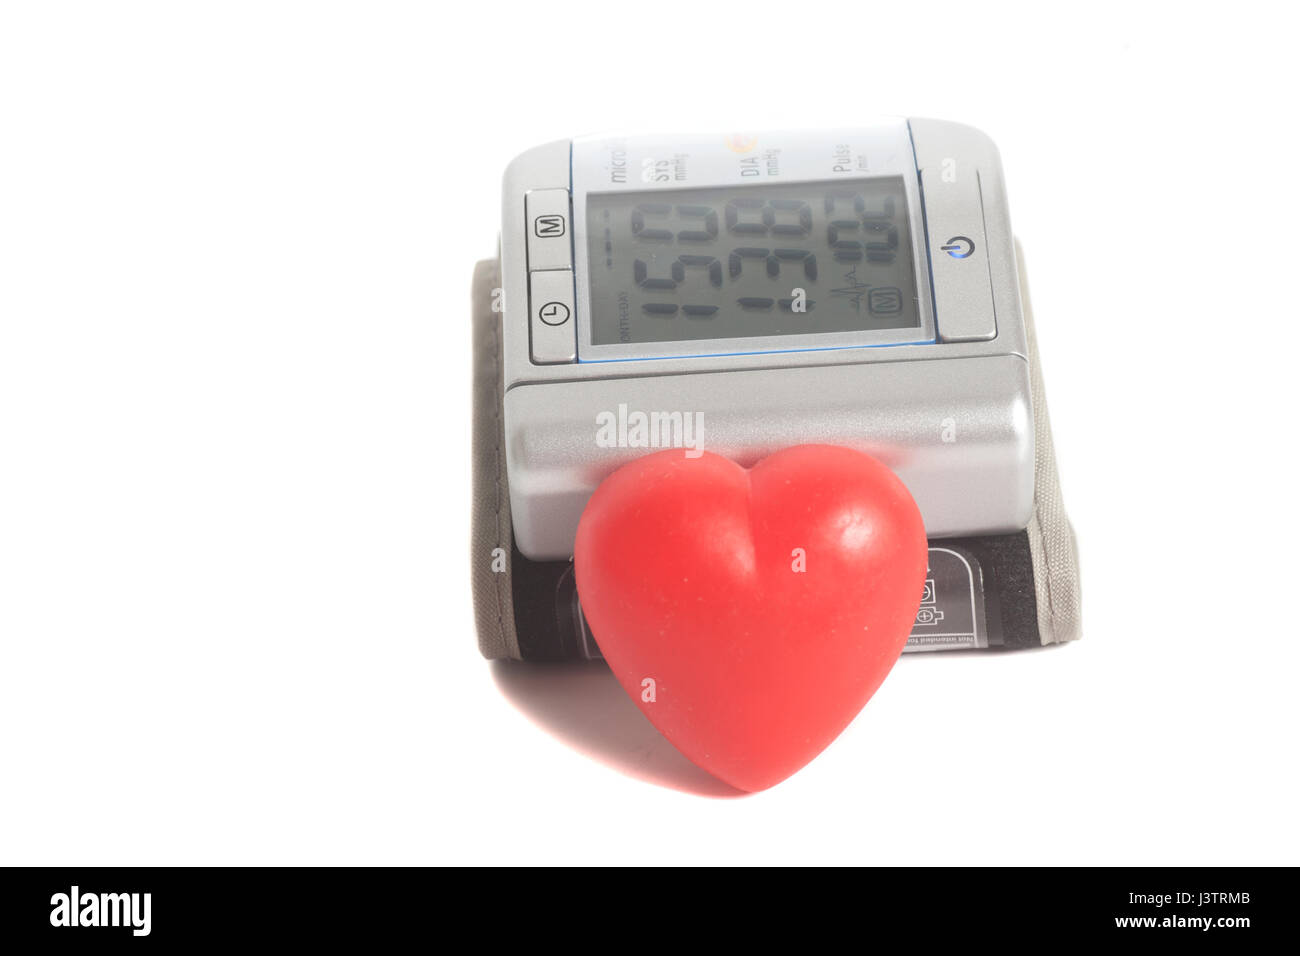 Digital blood pressure meter with heart symbol isolated on white ...